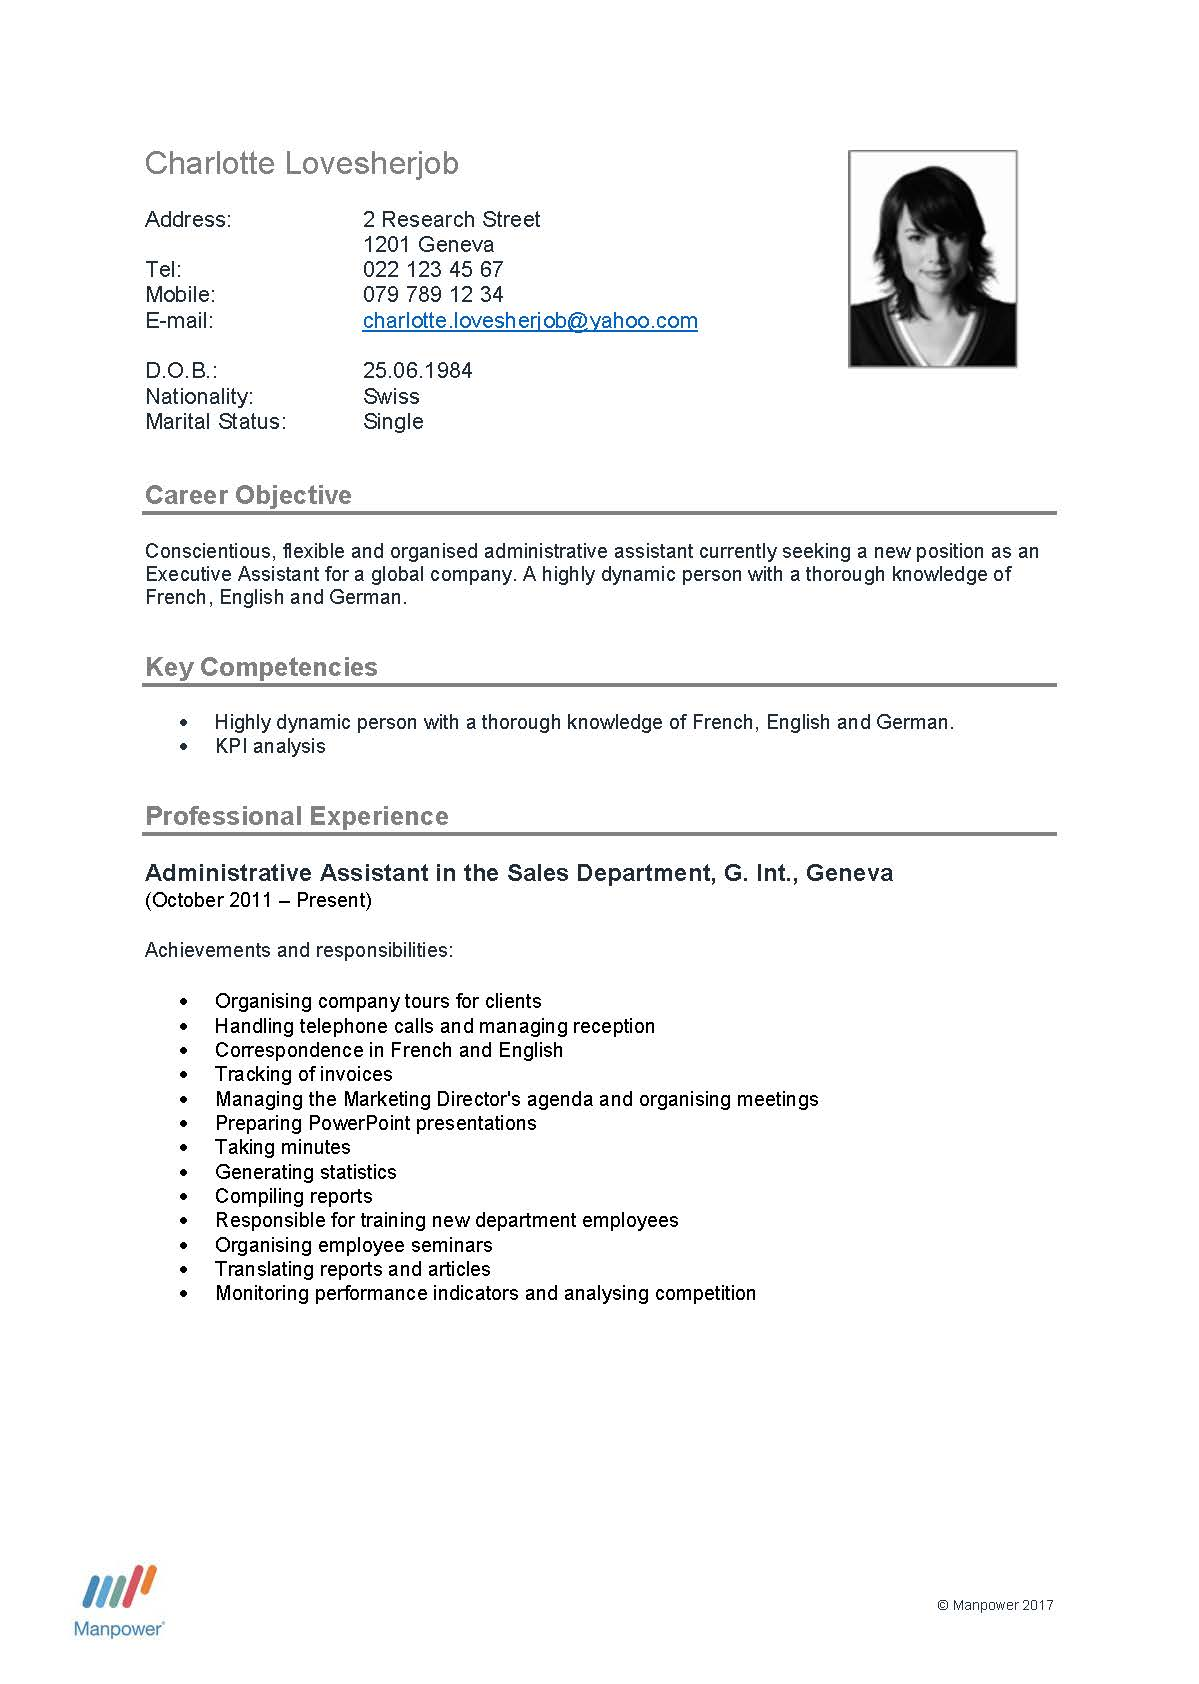 how can you make your cv stand out